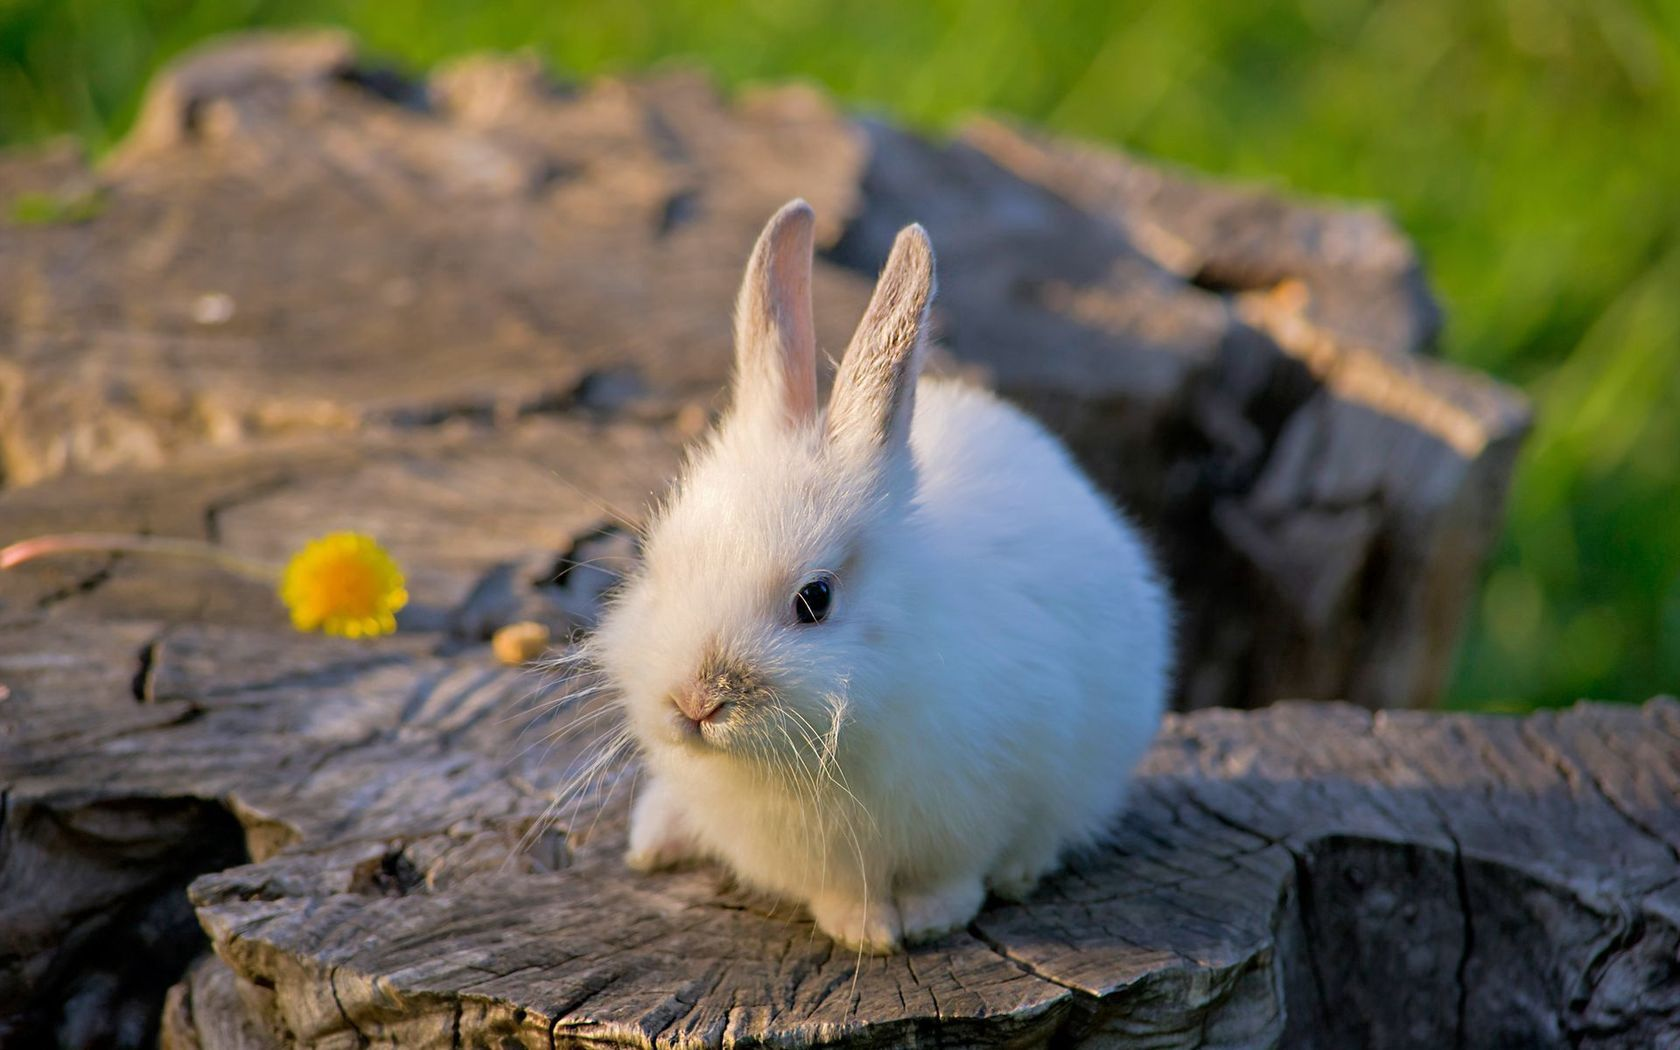 150378 download wallpaper Animals, Rabbit, Stump, Penek, Light Coloured, Light, Flower, Nice, Sweetheart screensavers and pictures for free